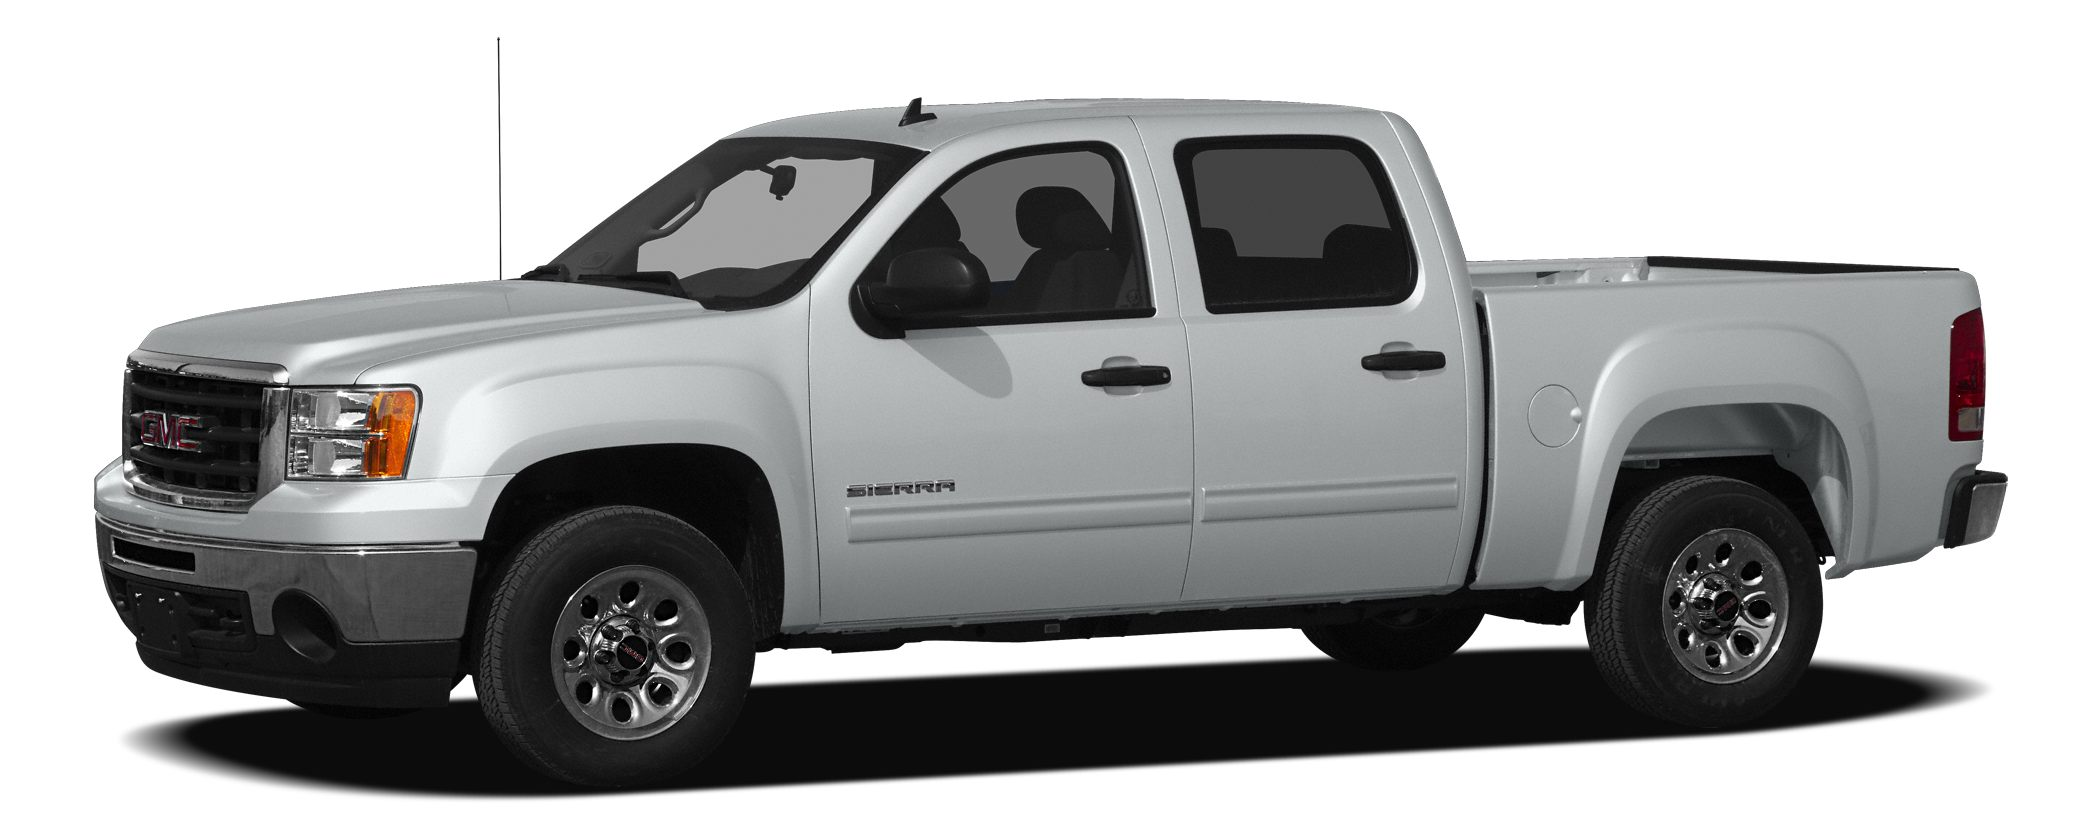 2010 GMC Sierra 1500 SLE This Silver 2010 GMC Sierra 1500 SLE might be just the crew cab for you